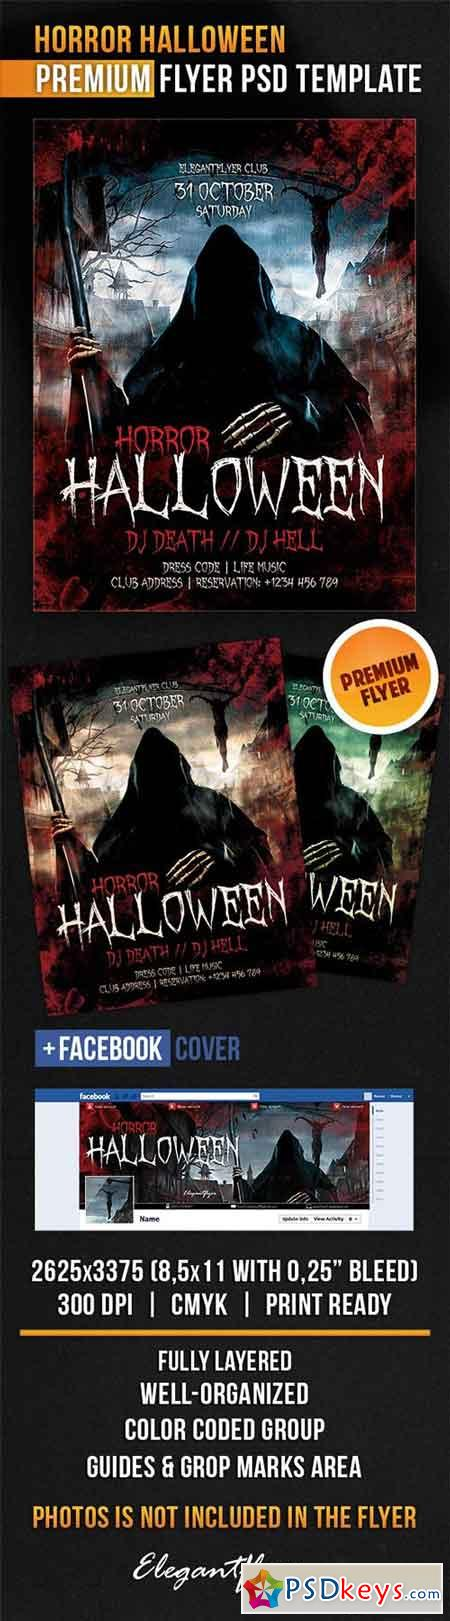 Horror Halloween Flyer PSD Template + Facebook Cover